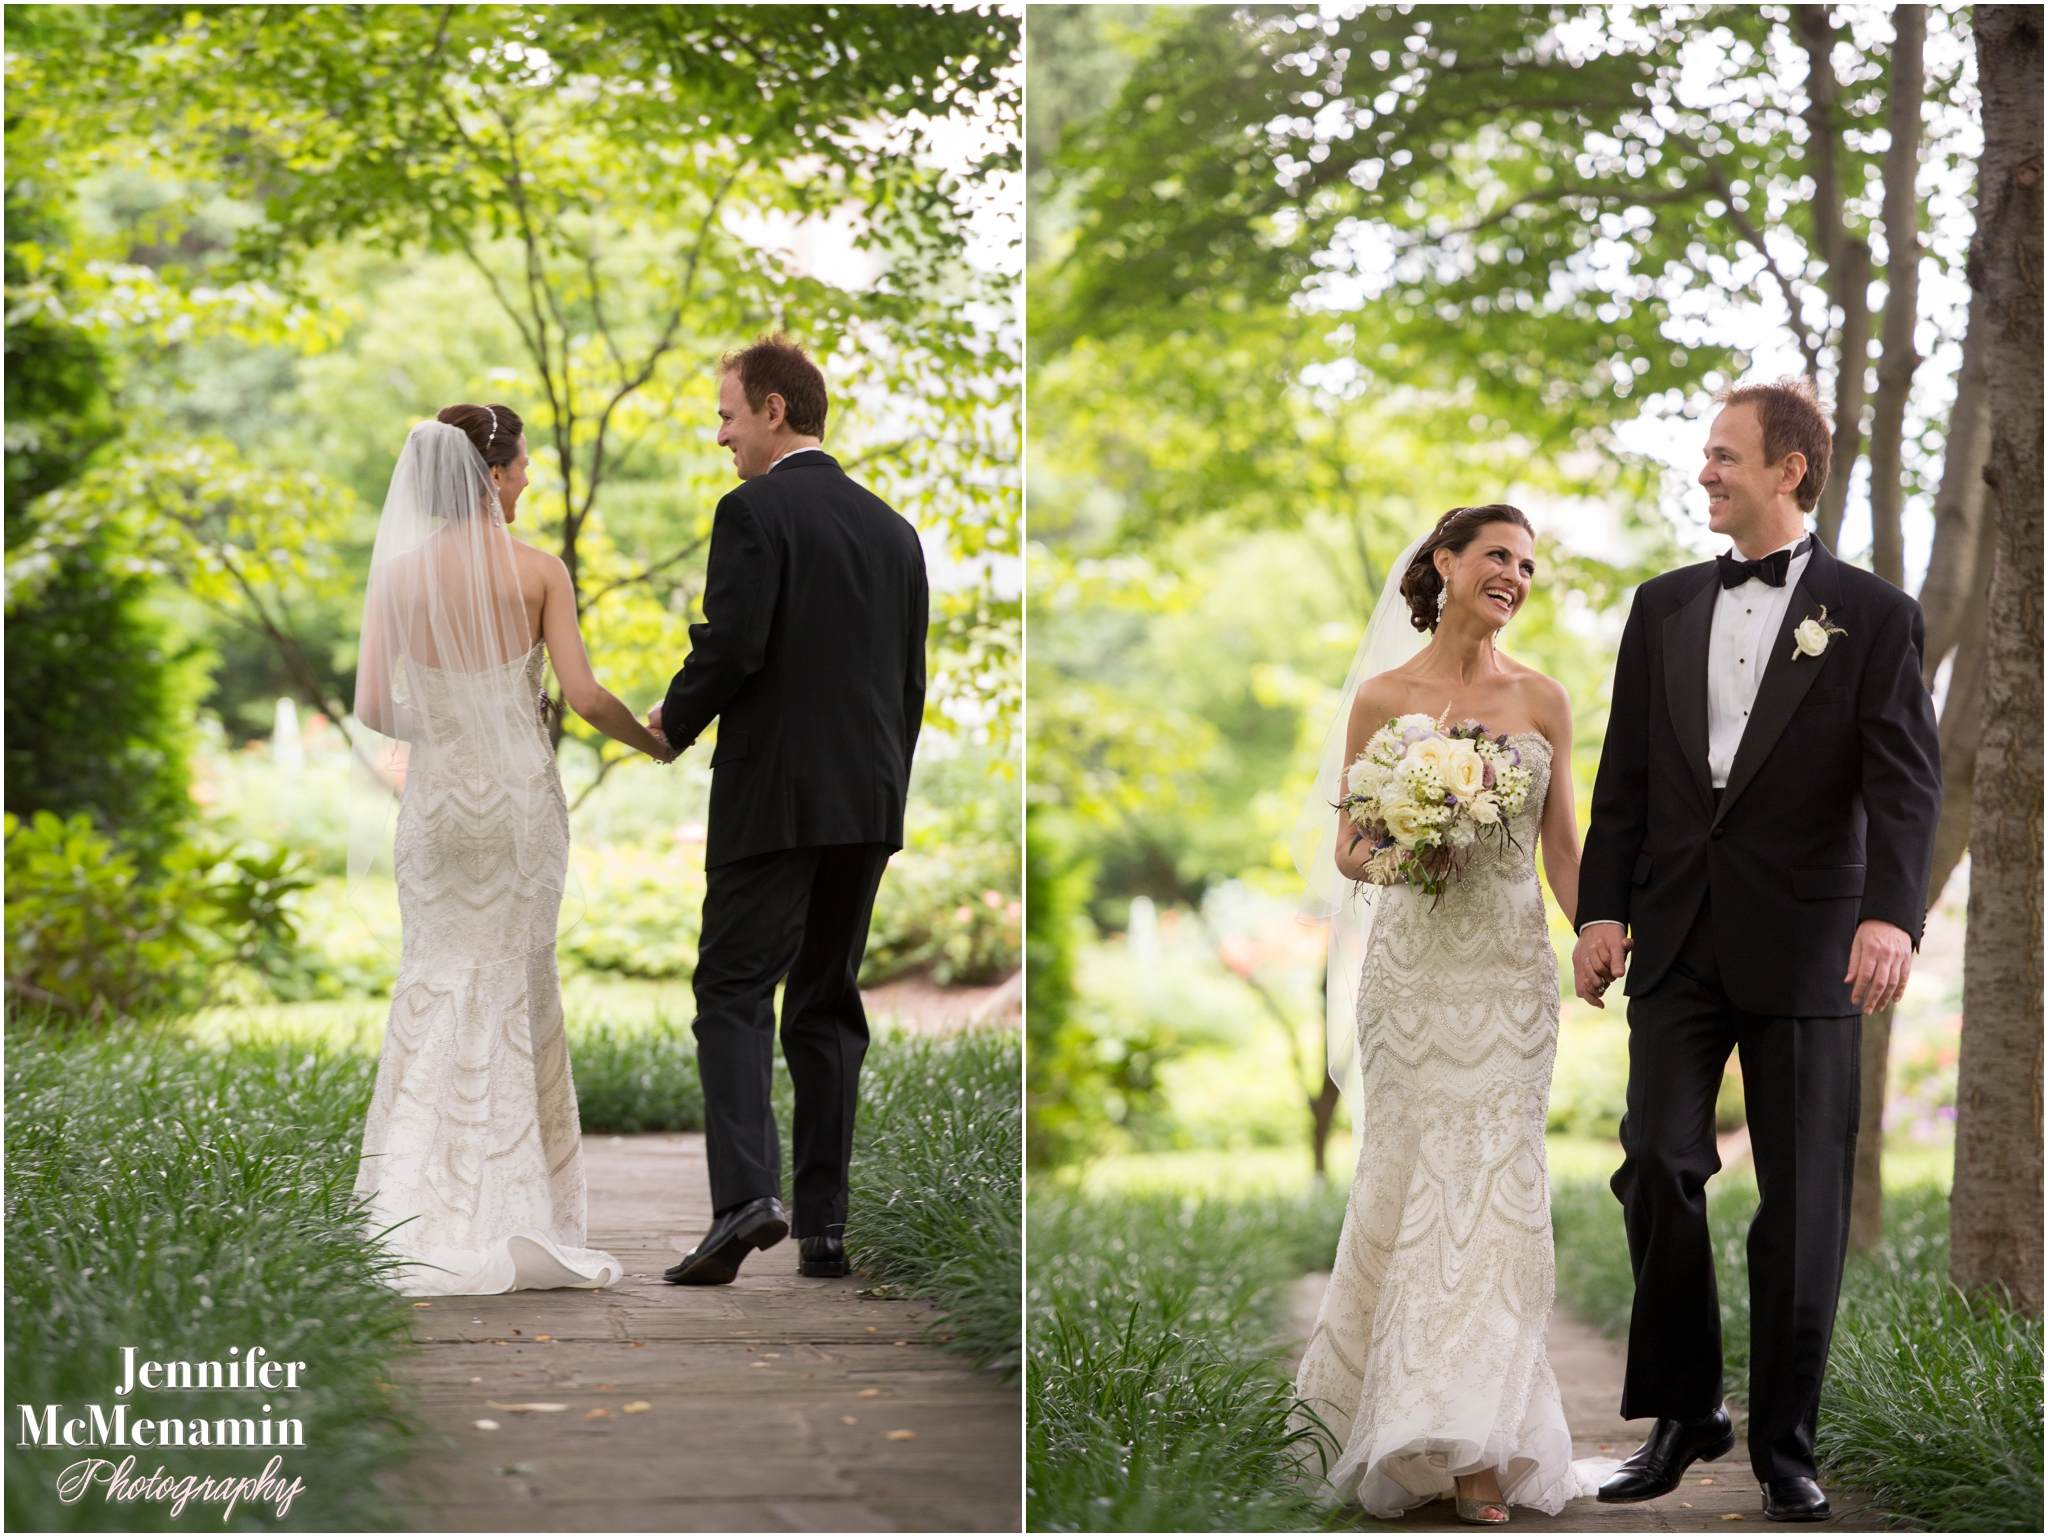 015-CoughlinPomper_00575-0124_JenniferMcMenaminPhotography_Private-Residence-Roland-Park_Baltimore-Wedding-Photography